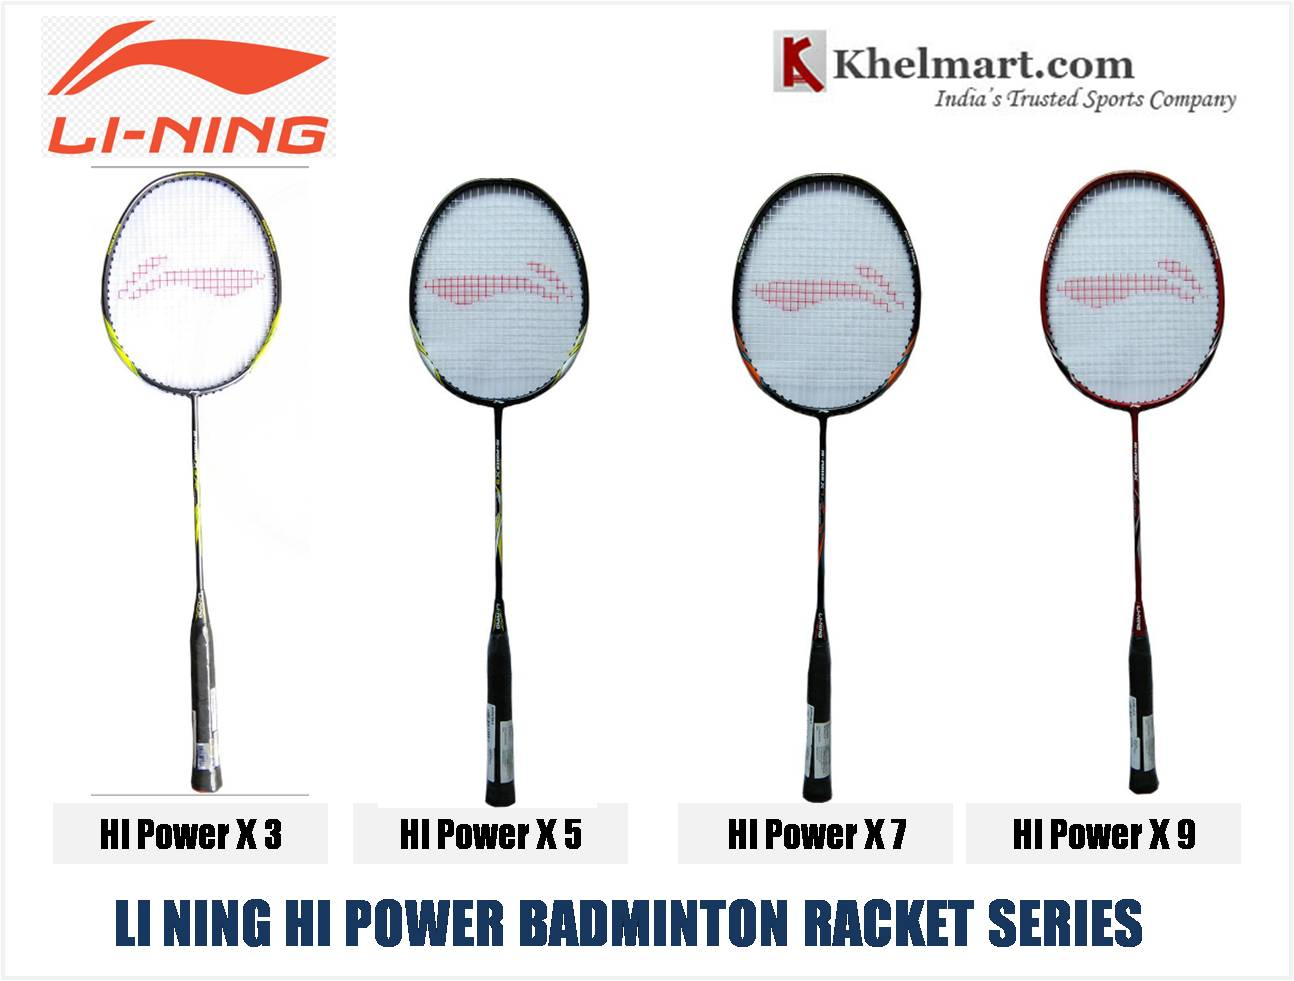 LI_NING_HI_POwer_BADMINTON_RACKET_SERIES_by_Khelmart